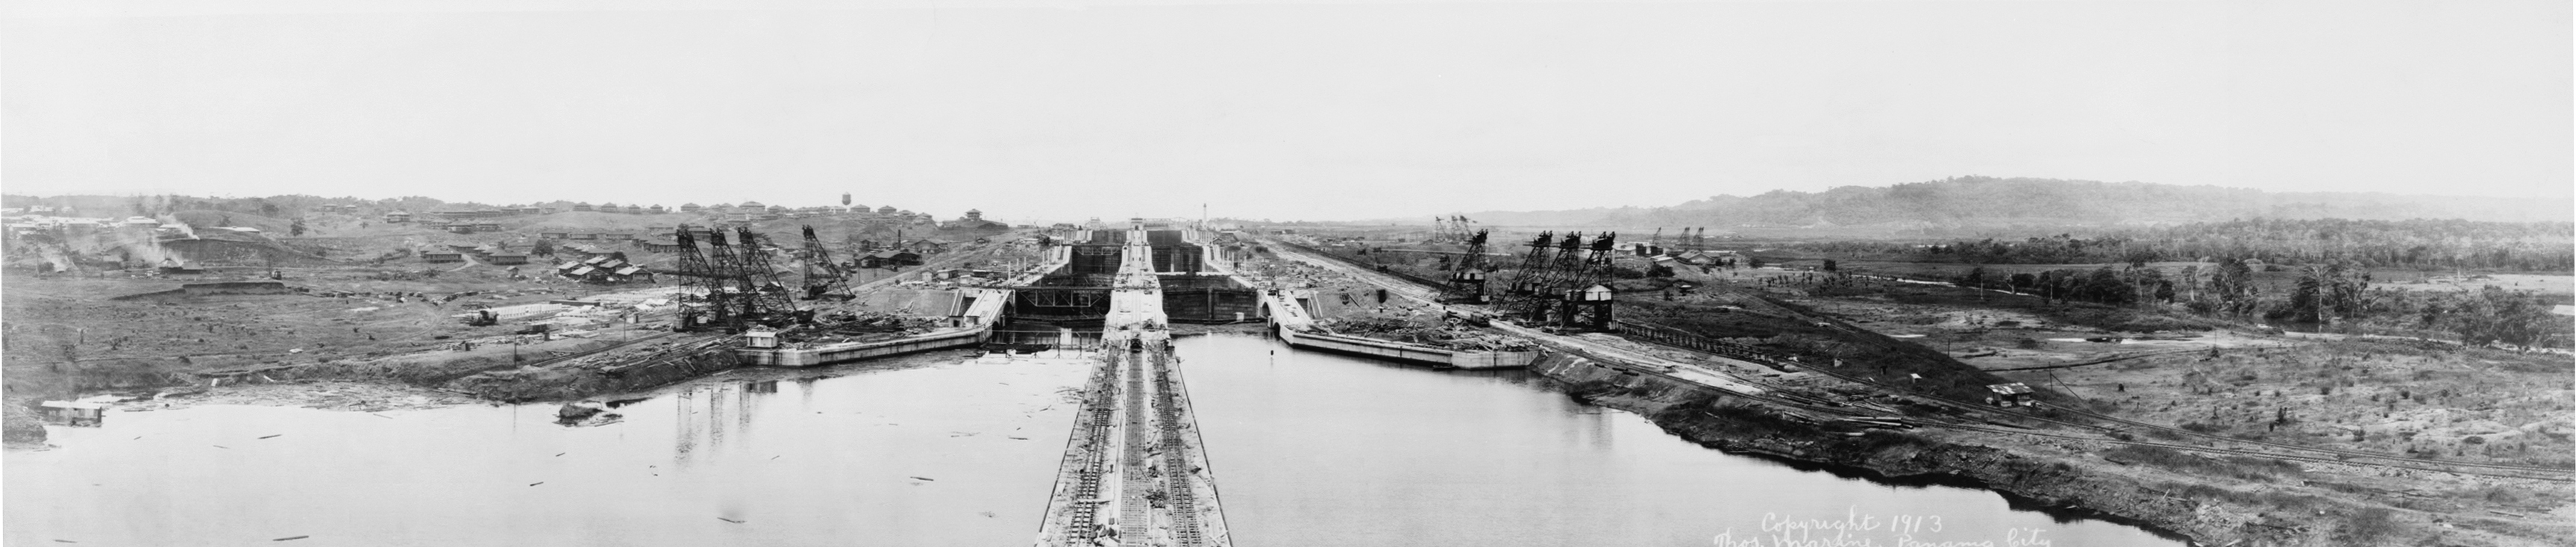 http://upload.wikimedia.org/wikipedia/commons/c/cb/PanamaCanal1913a.jpg